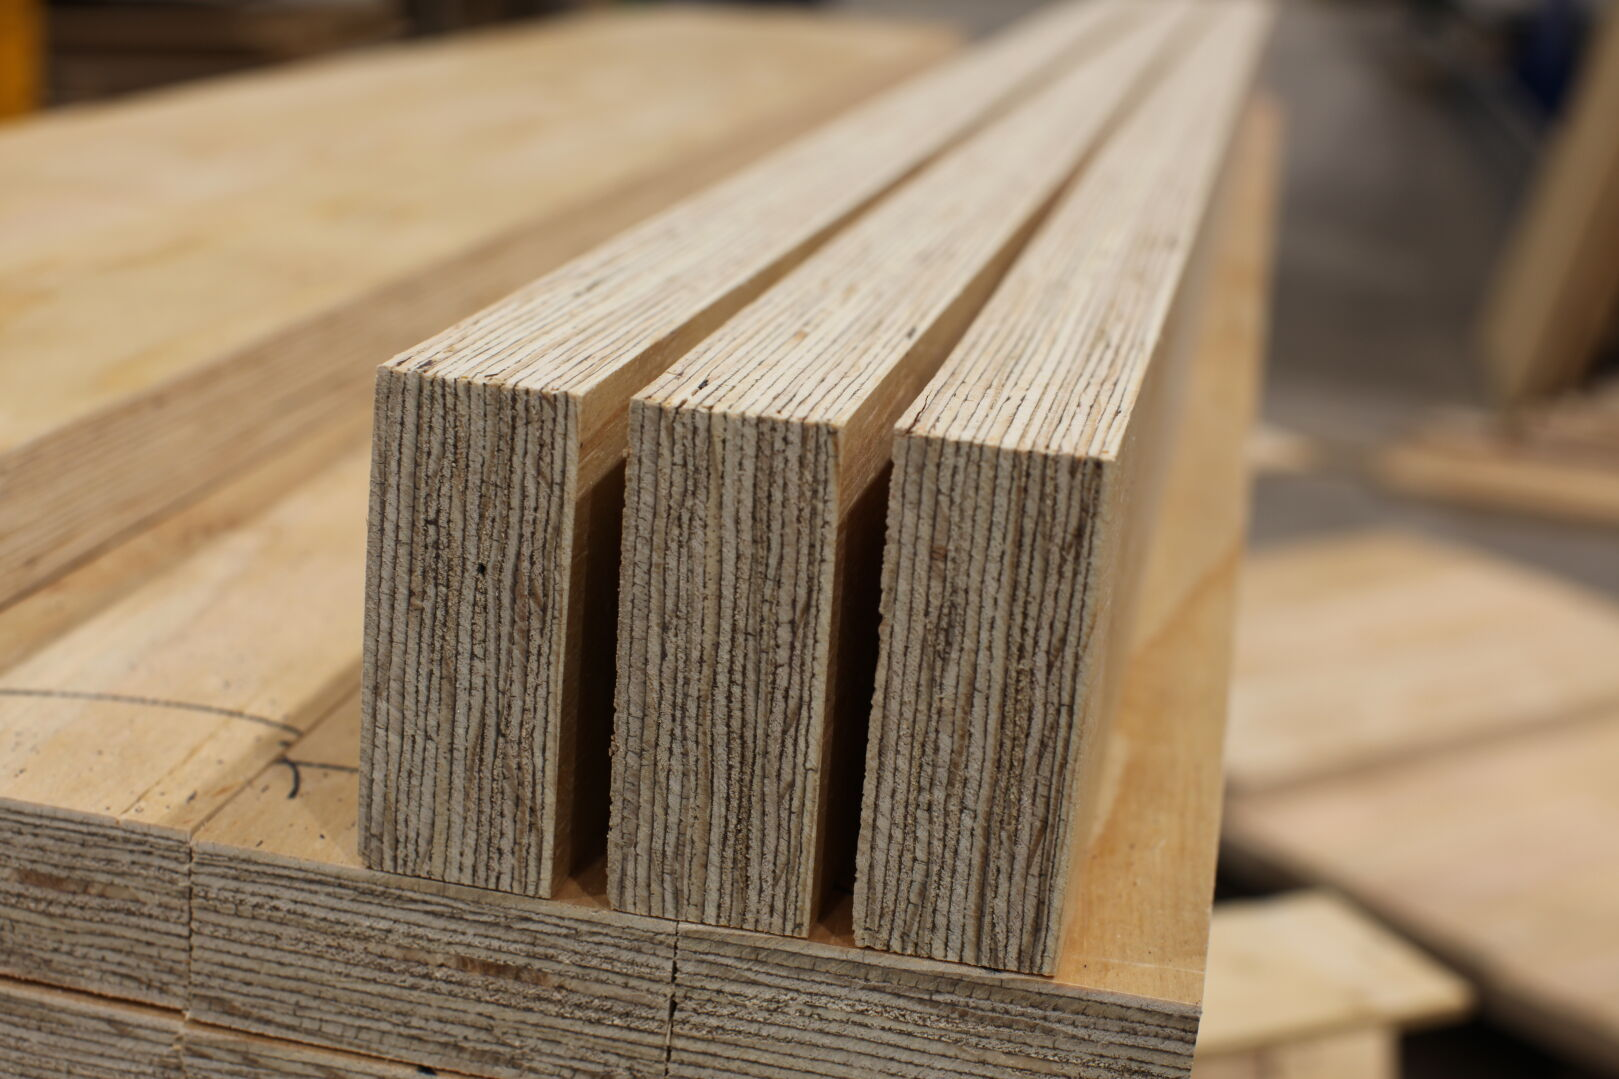 Typically LVL is made of thick veneer and veneer sheets are laid in same grain direction.